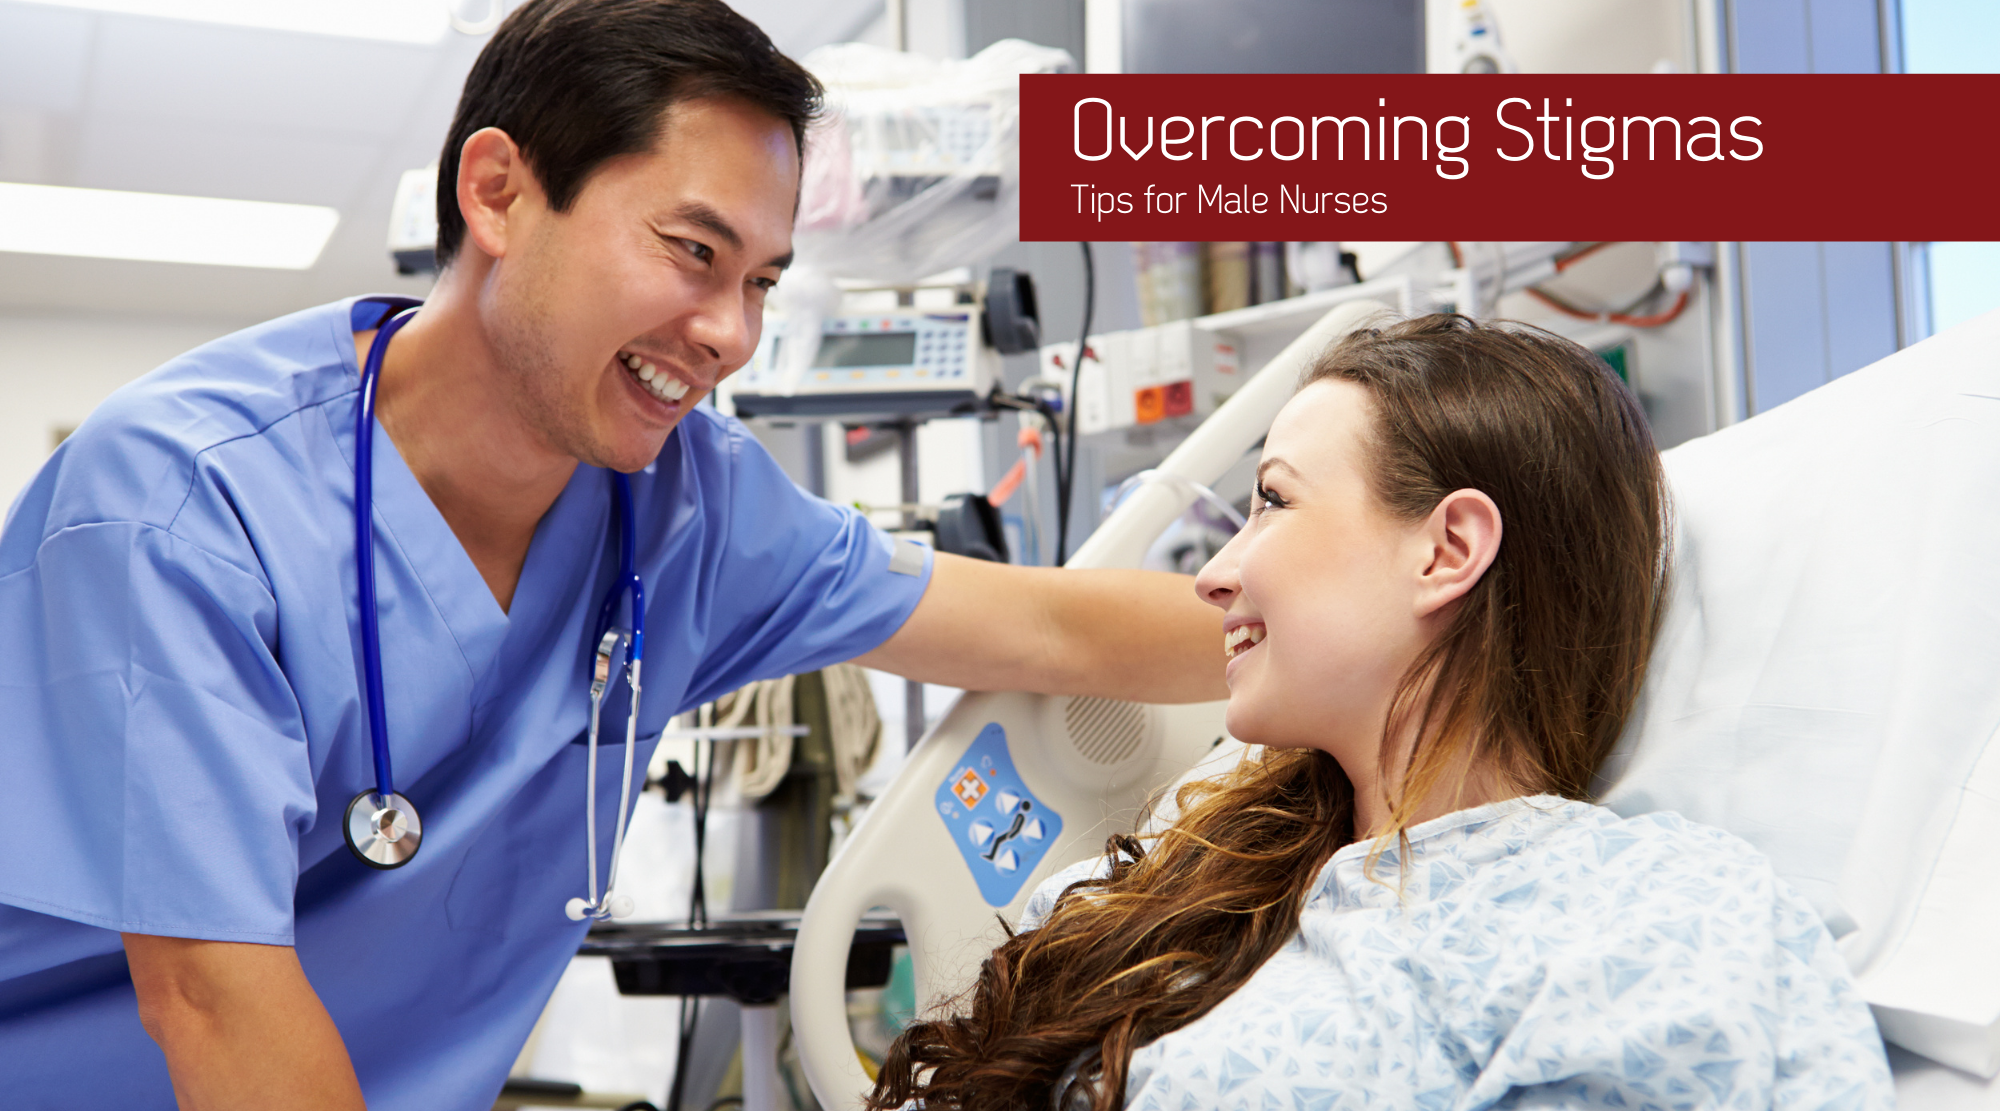 Overcoming Stigmas: Tips for Male Nurses